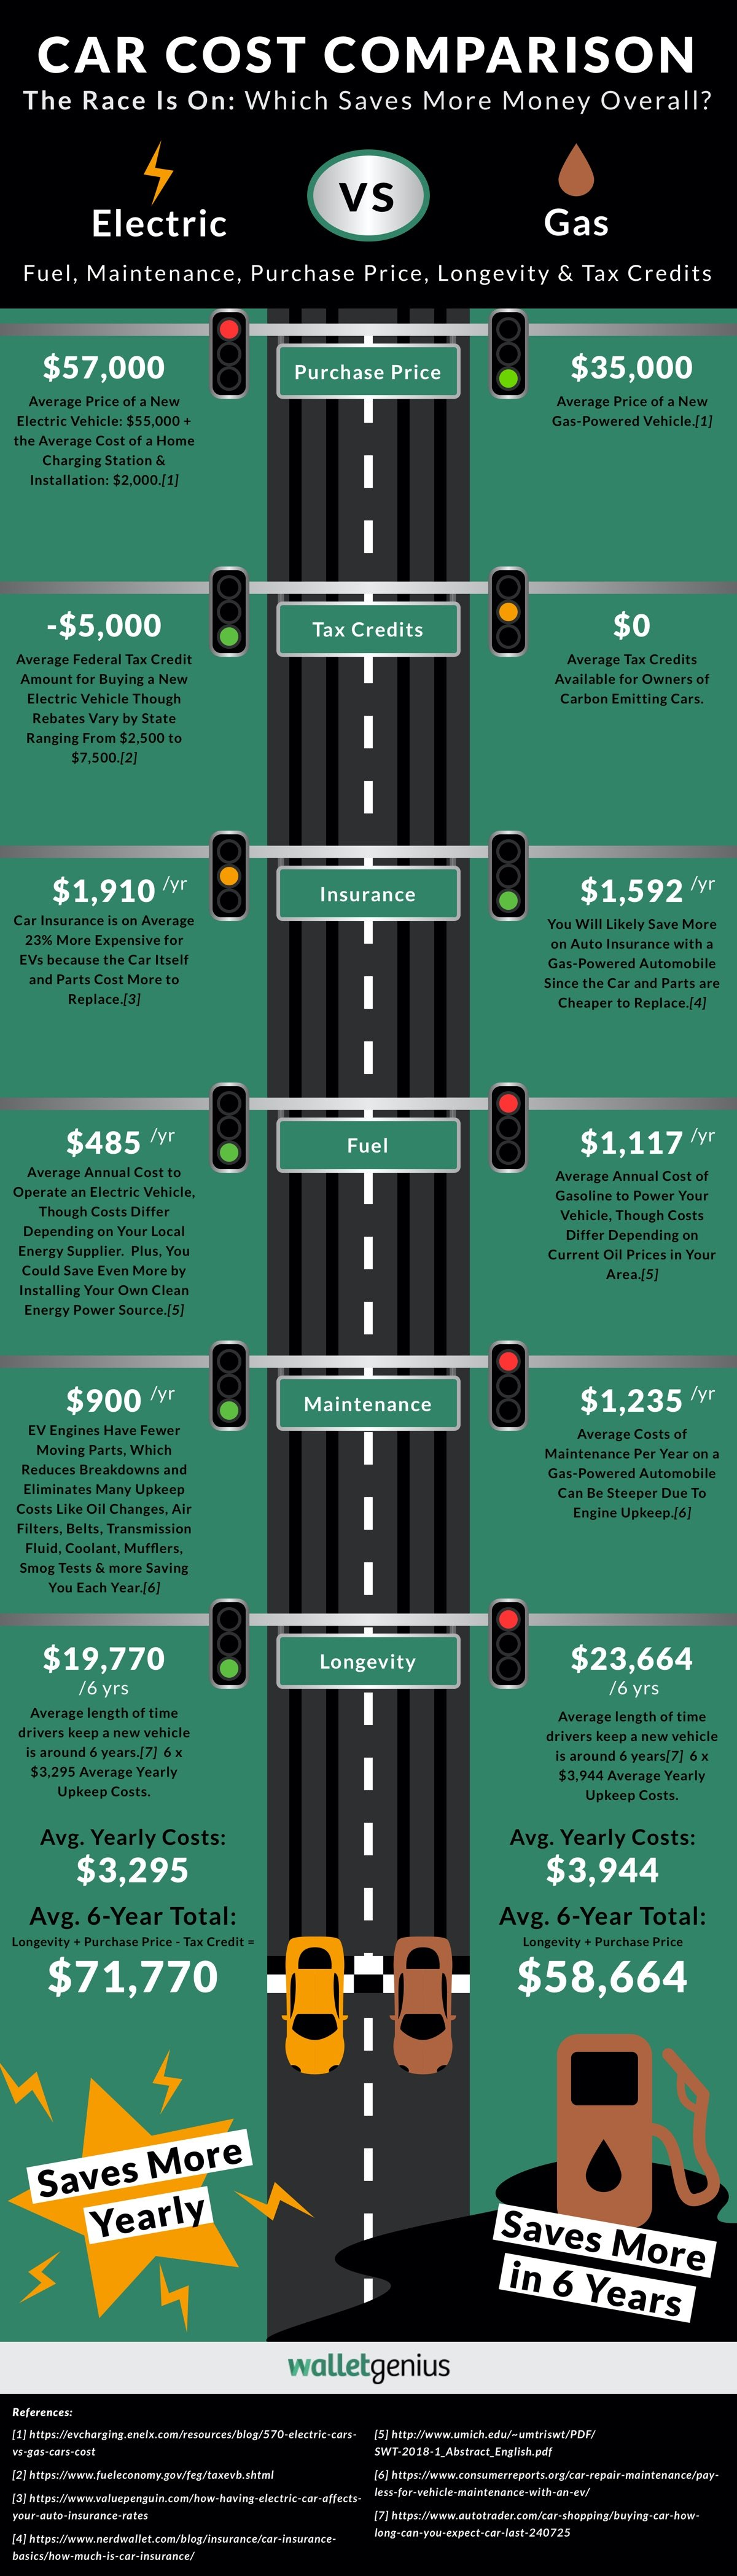 Electric Car vs Gas Cost: Which Truly Saves You The Most Money?